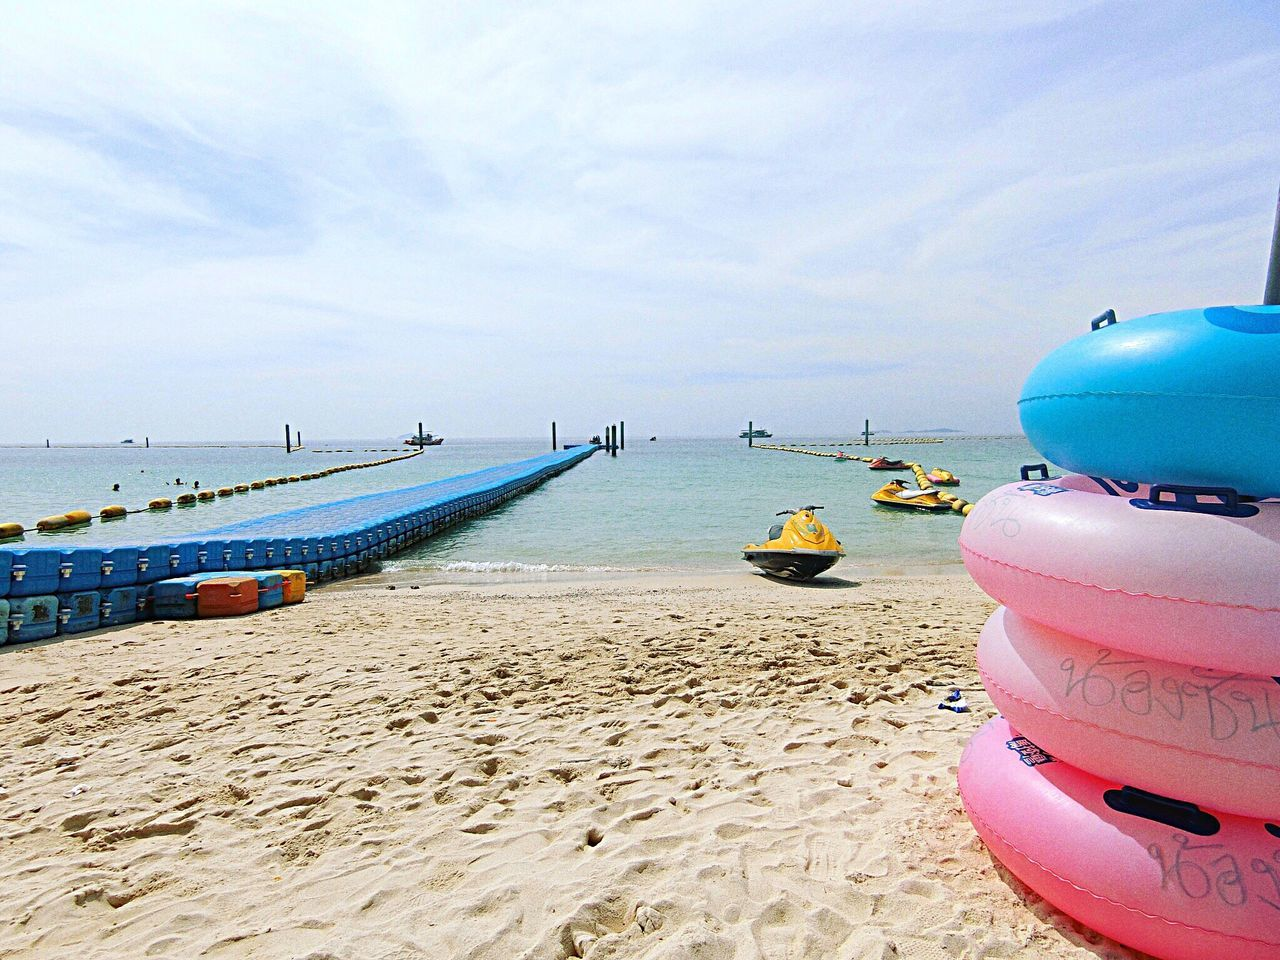 Sea Beach Water Sand Sky Nautical Vessel Beauty In Nature Shore Nature Tranquil Scene Scenics Horizon Over Water Mode Of Transport Tranquility Moored Outdoors Day No People Outrigger